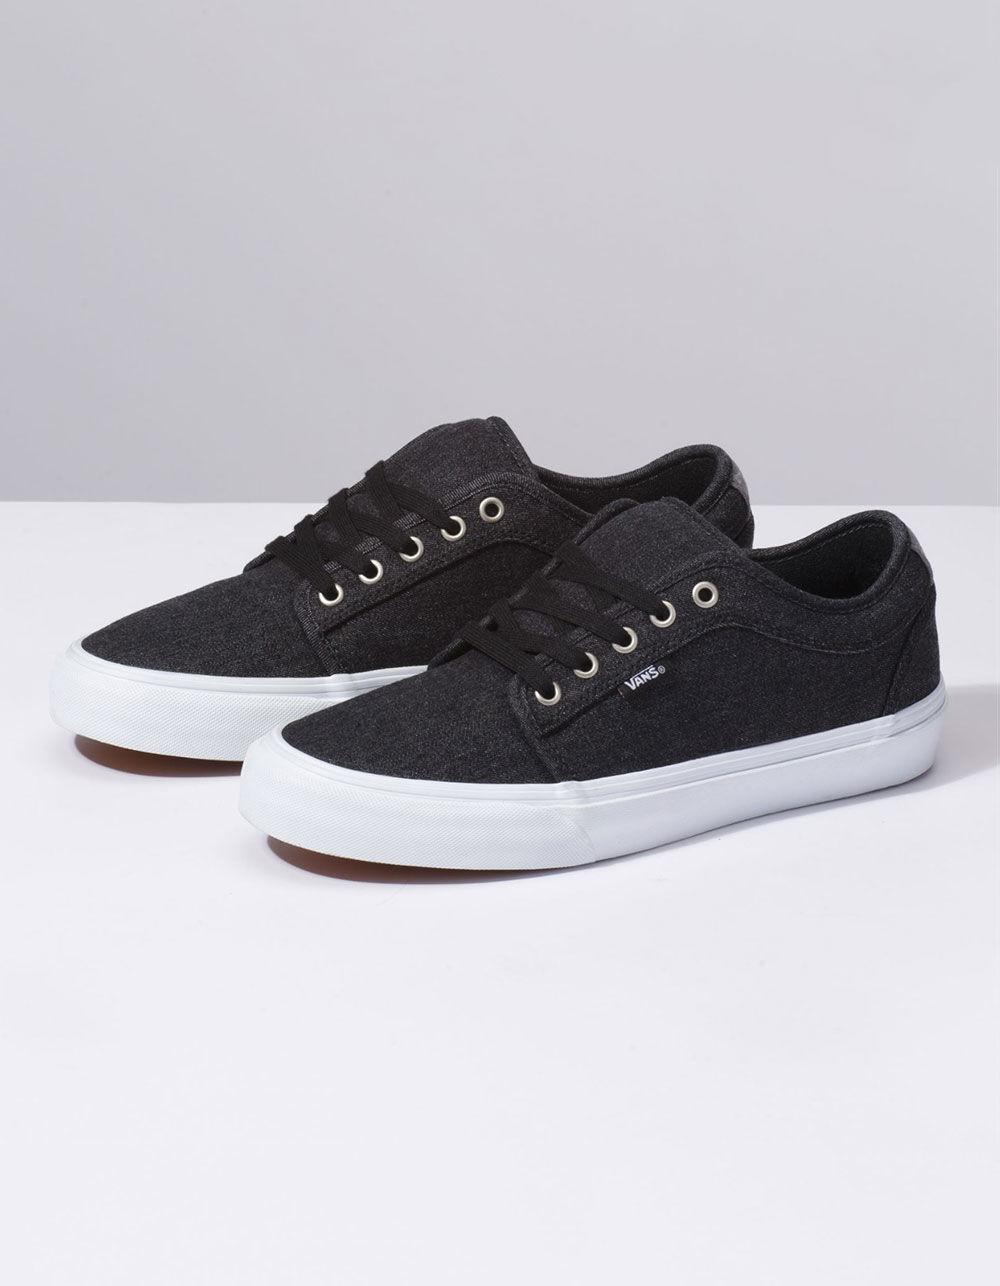 e35cfad2b038a7 Lyst - Vans Denim Chukka Low Black   Pewter Shoes in Black for Men